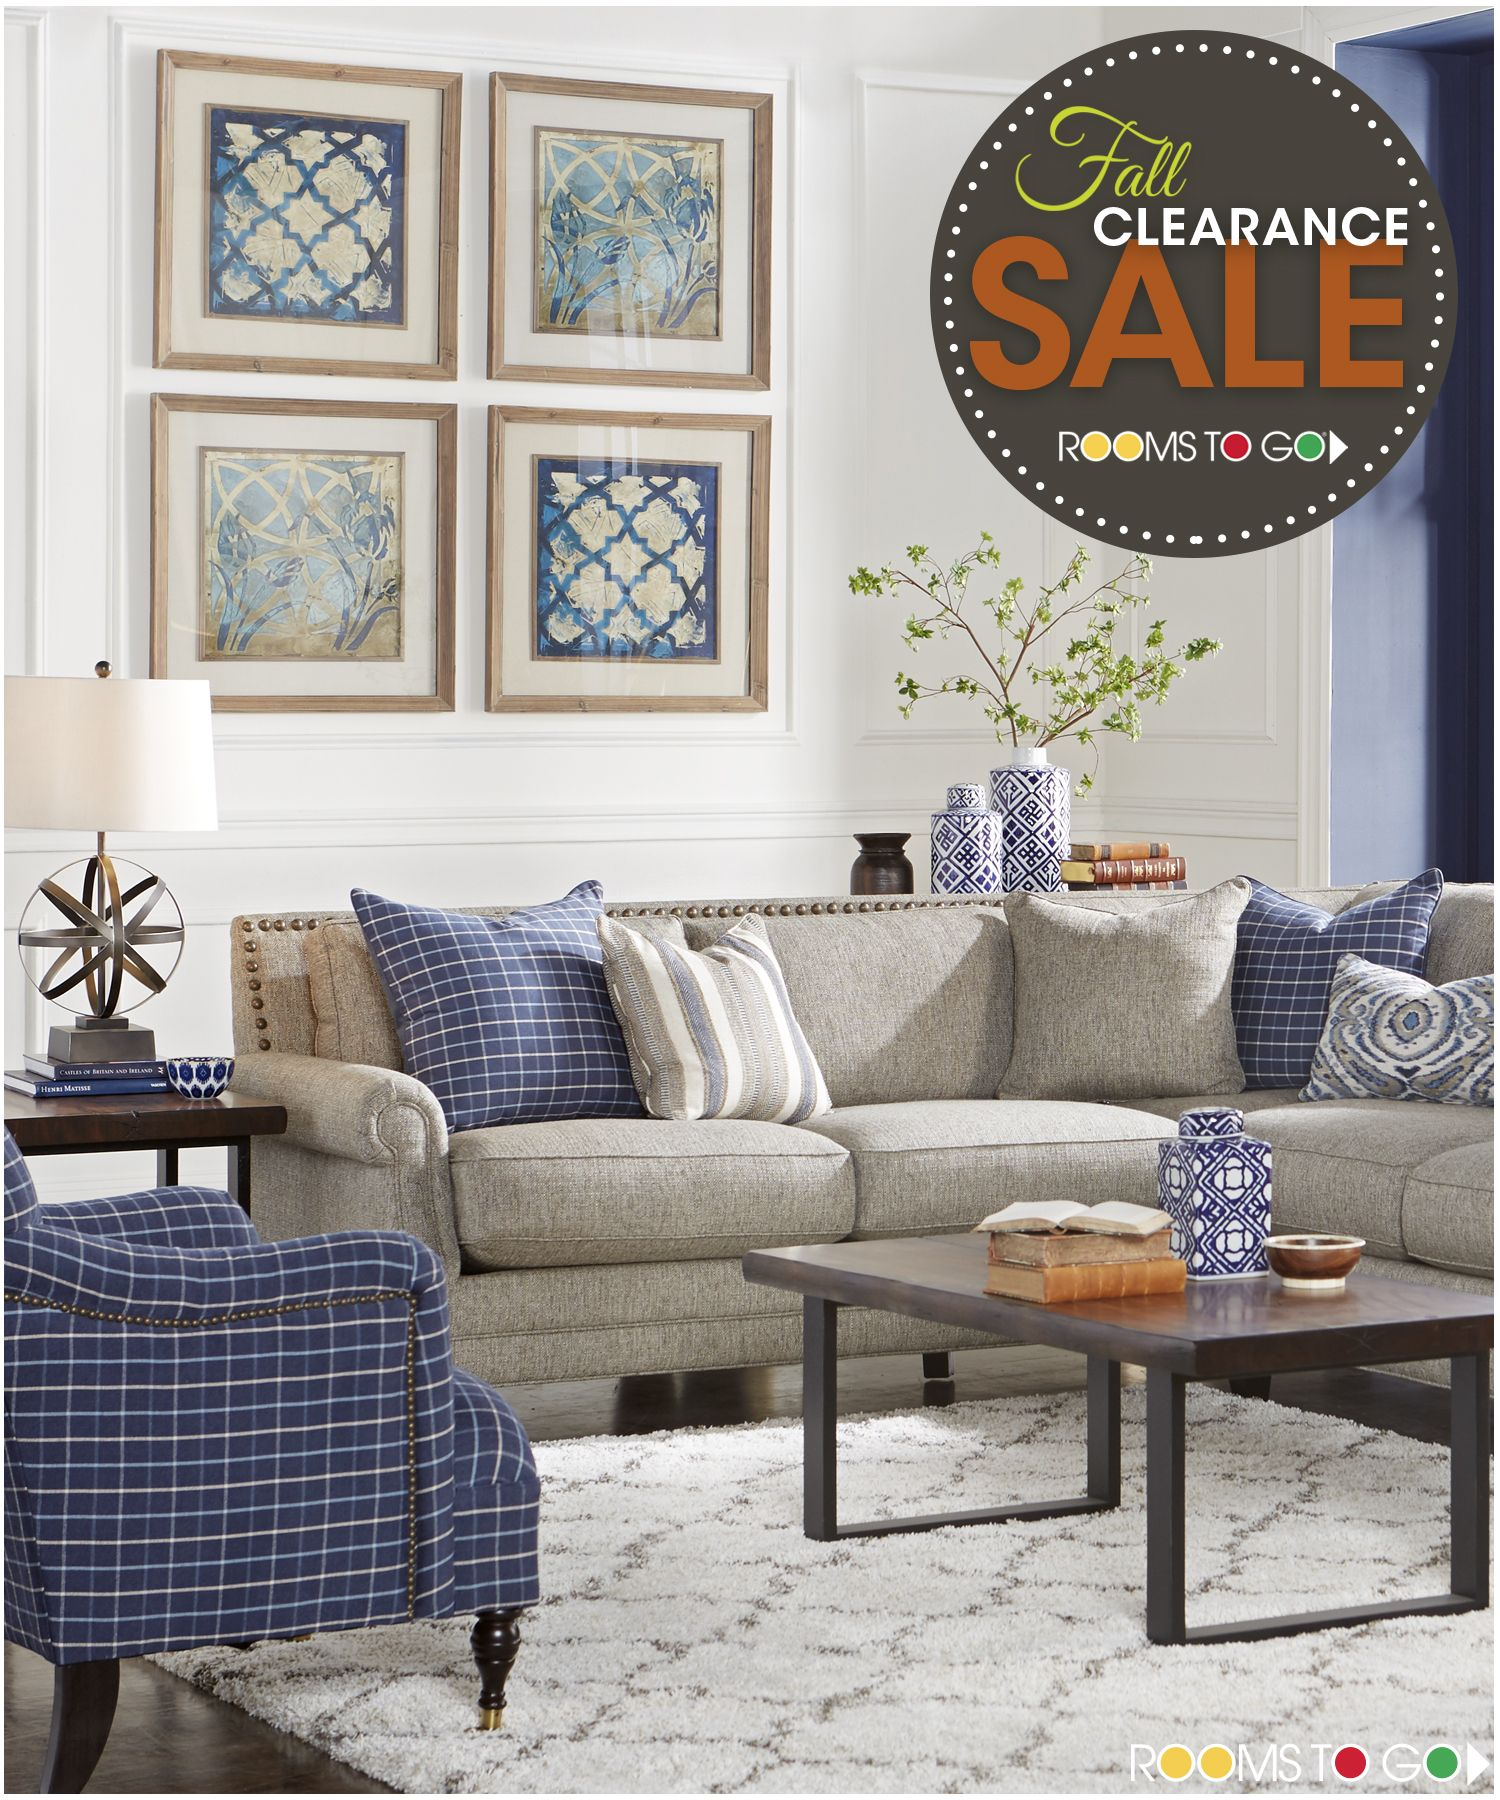 Visit Rooms To Go now during our Fall Clearance Sales ...